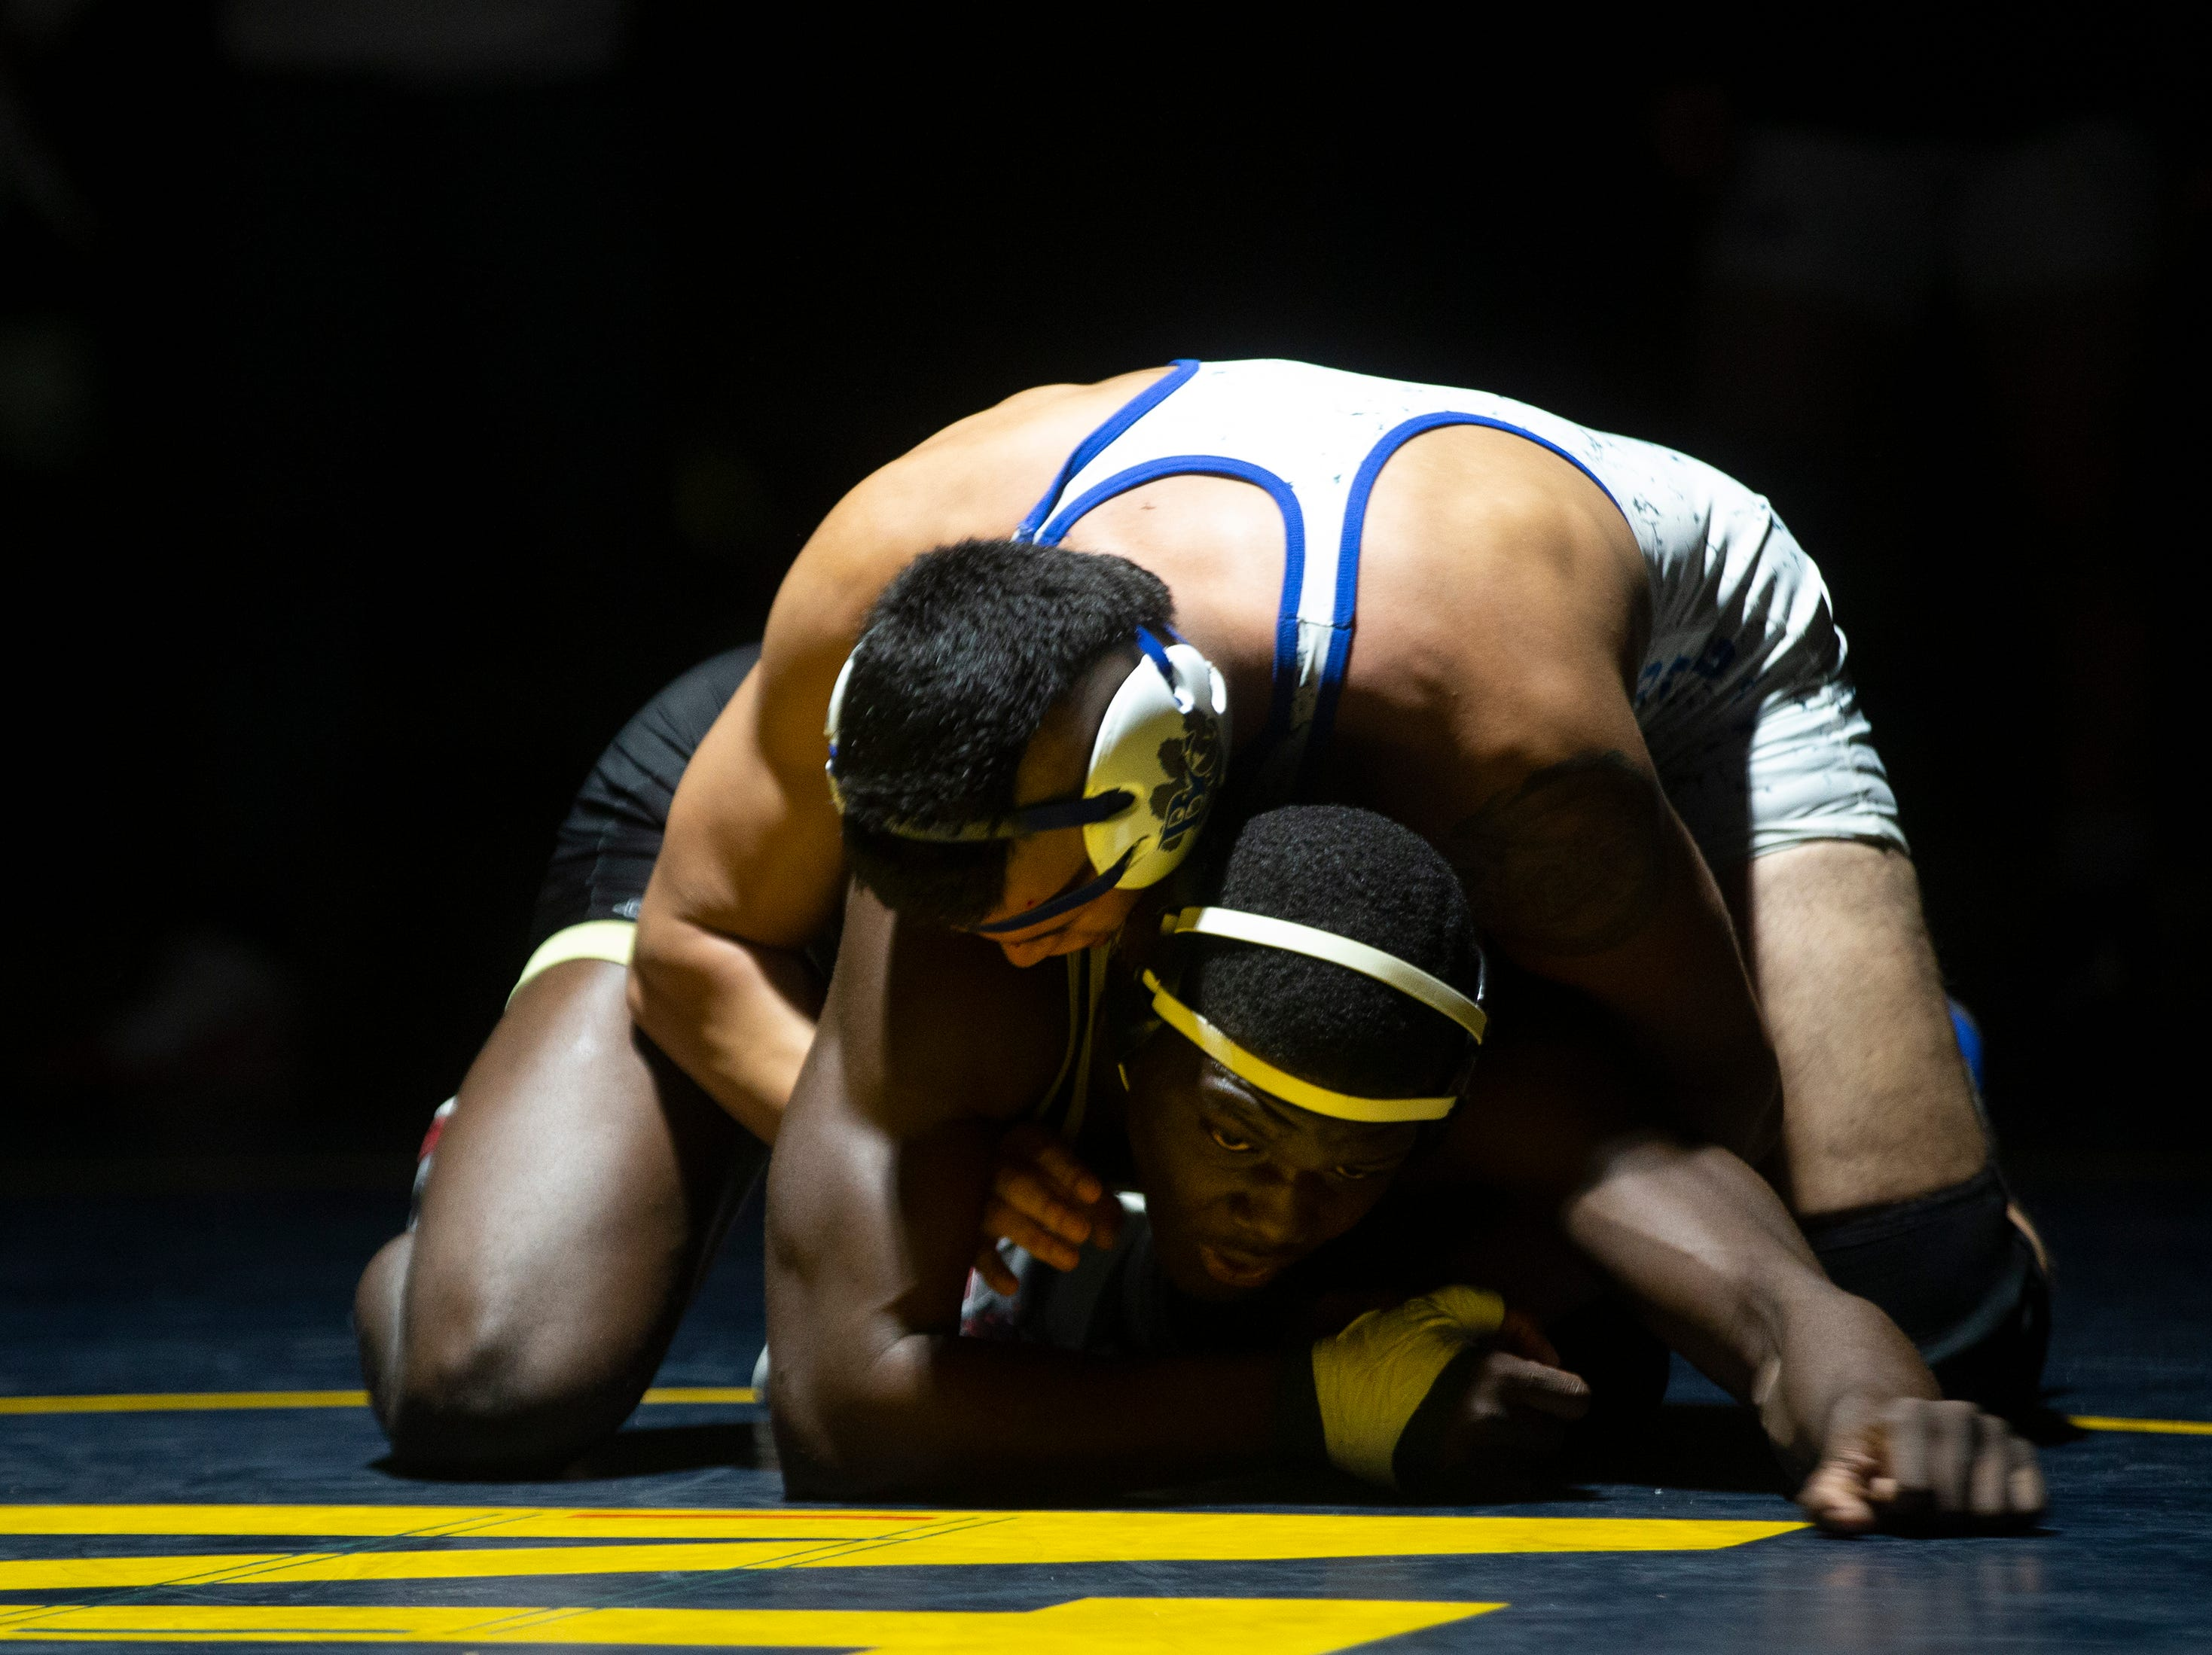 Golden Gate's Kevin Jean Jacques wrestles Barron G. Collier High School's Malcow Casas  in the 195-pound weight class during the Collier County Athletic Conference wrestling championship, Wednesday, Jan. 9, 2018, at Naples High School.